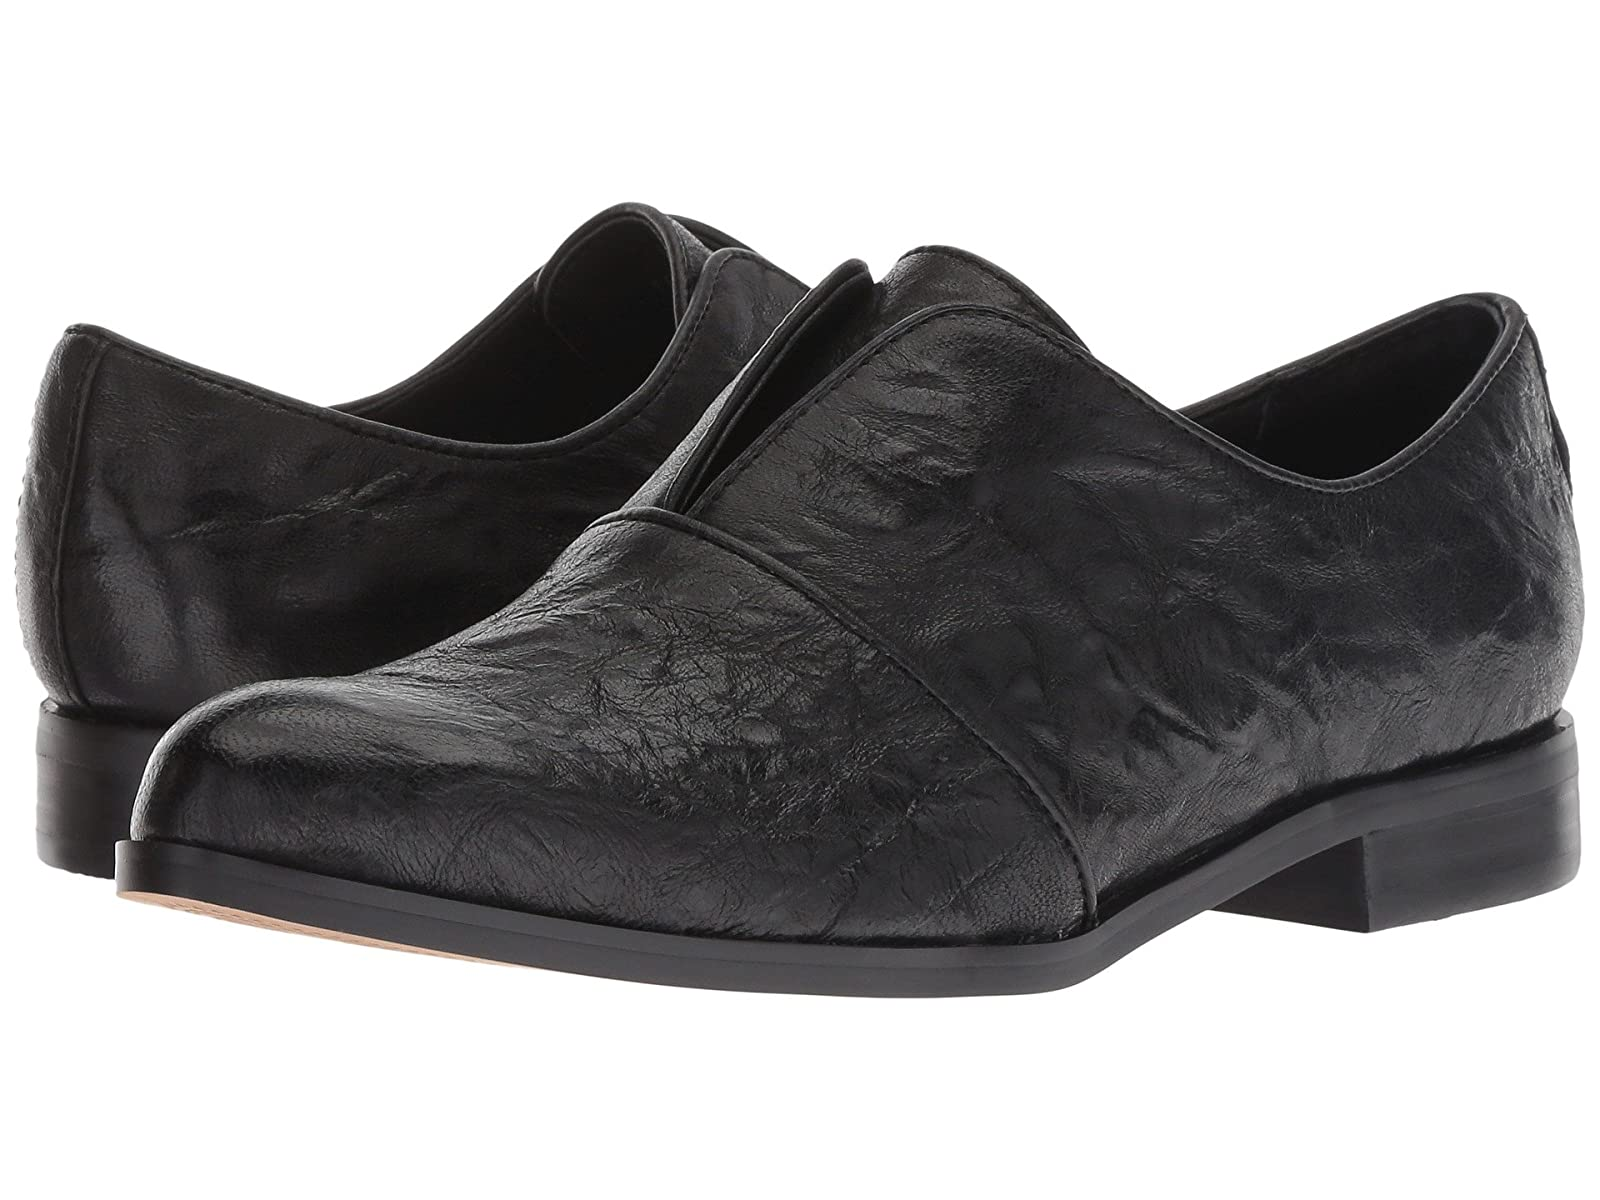 Isola MariaAtmospheric grades have affordable shoes